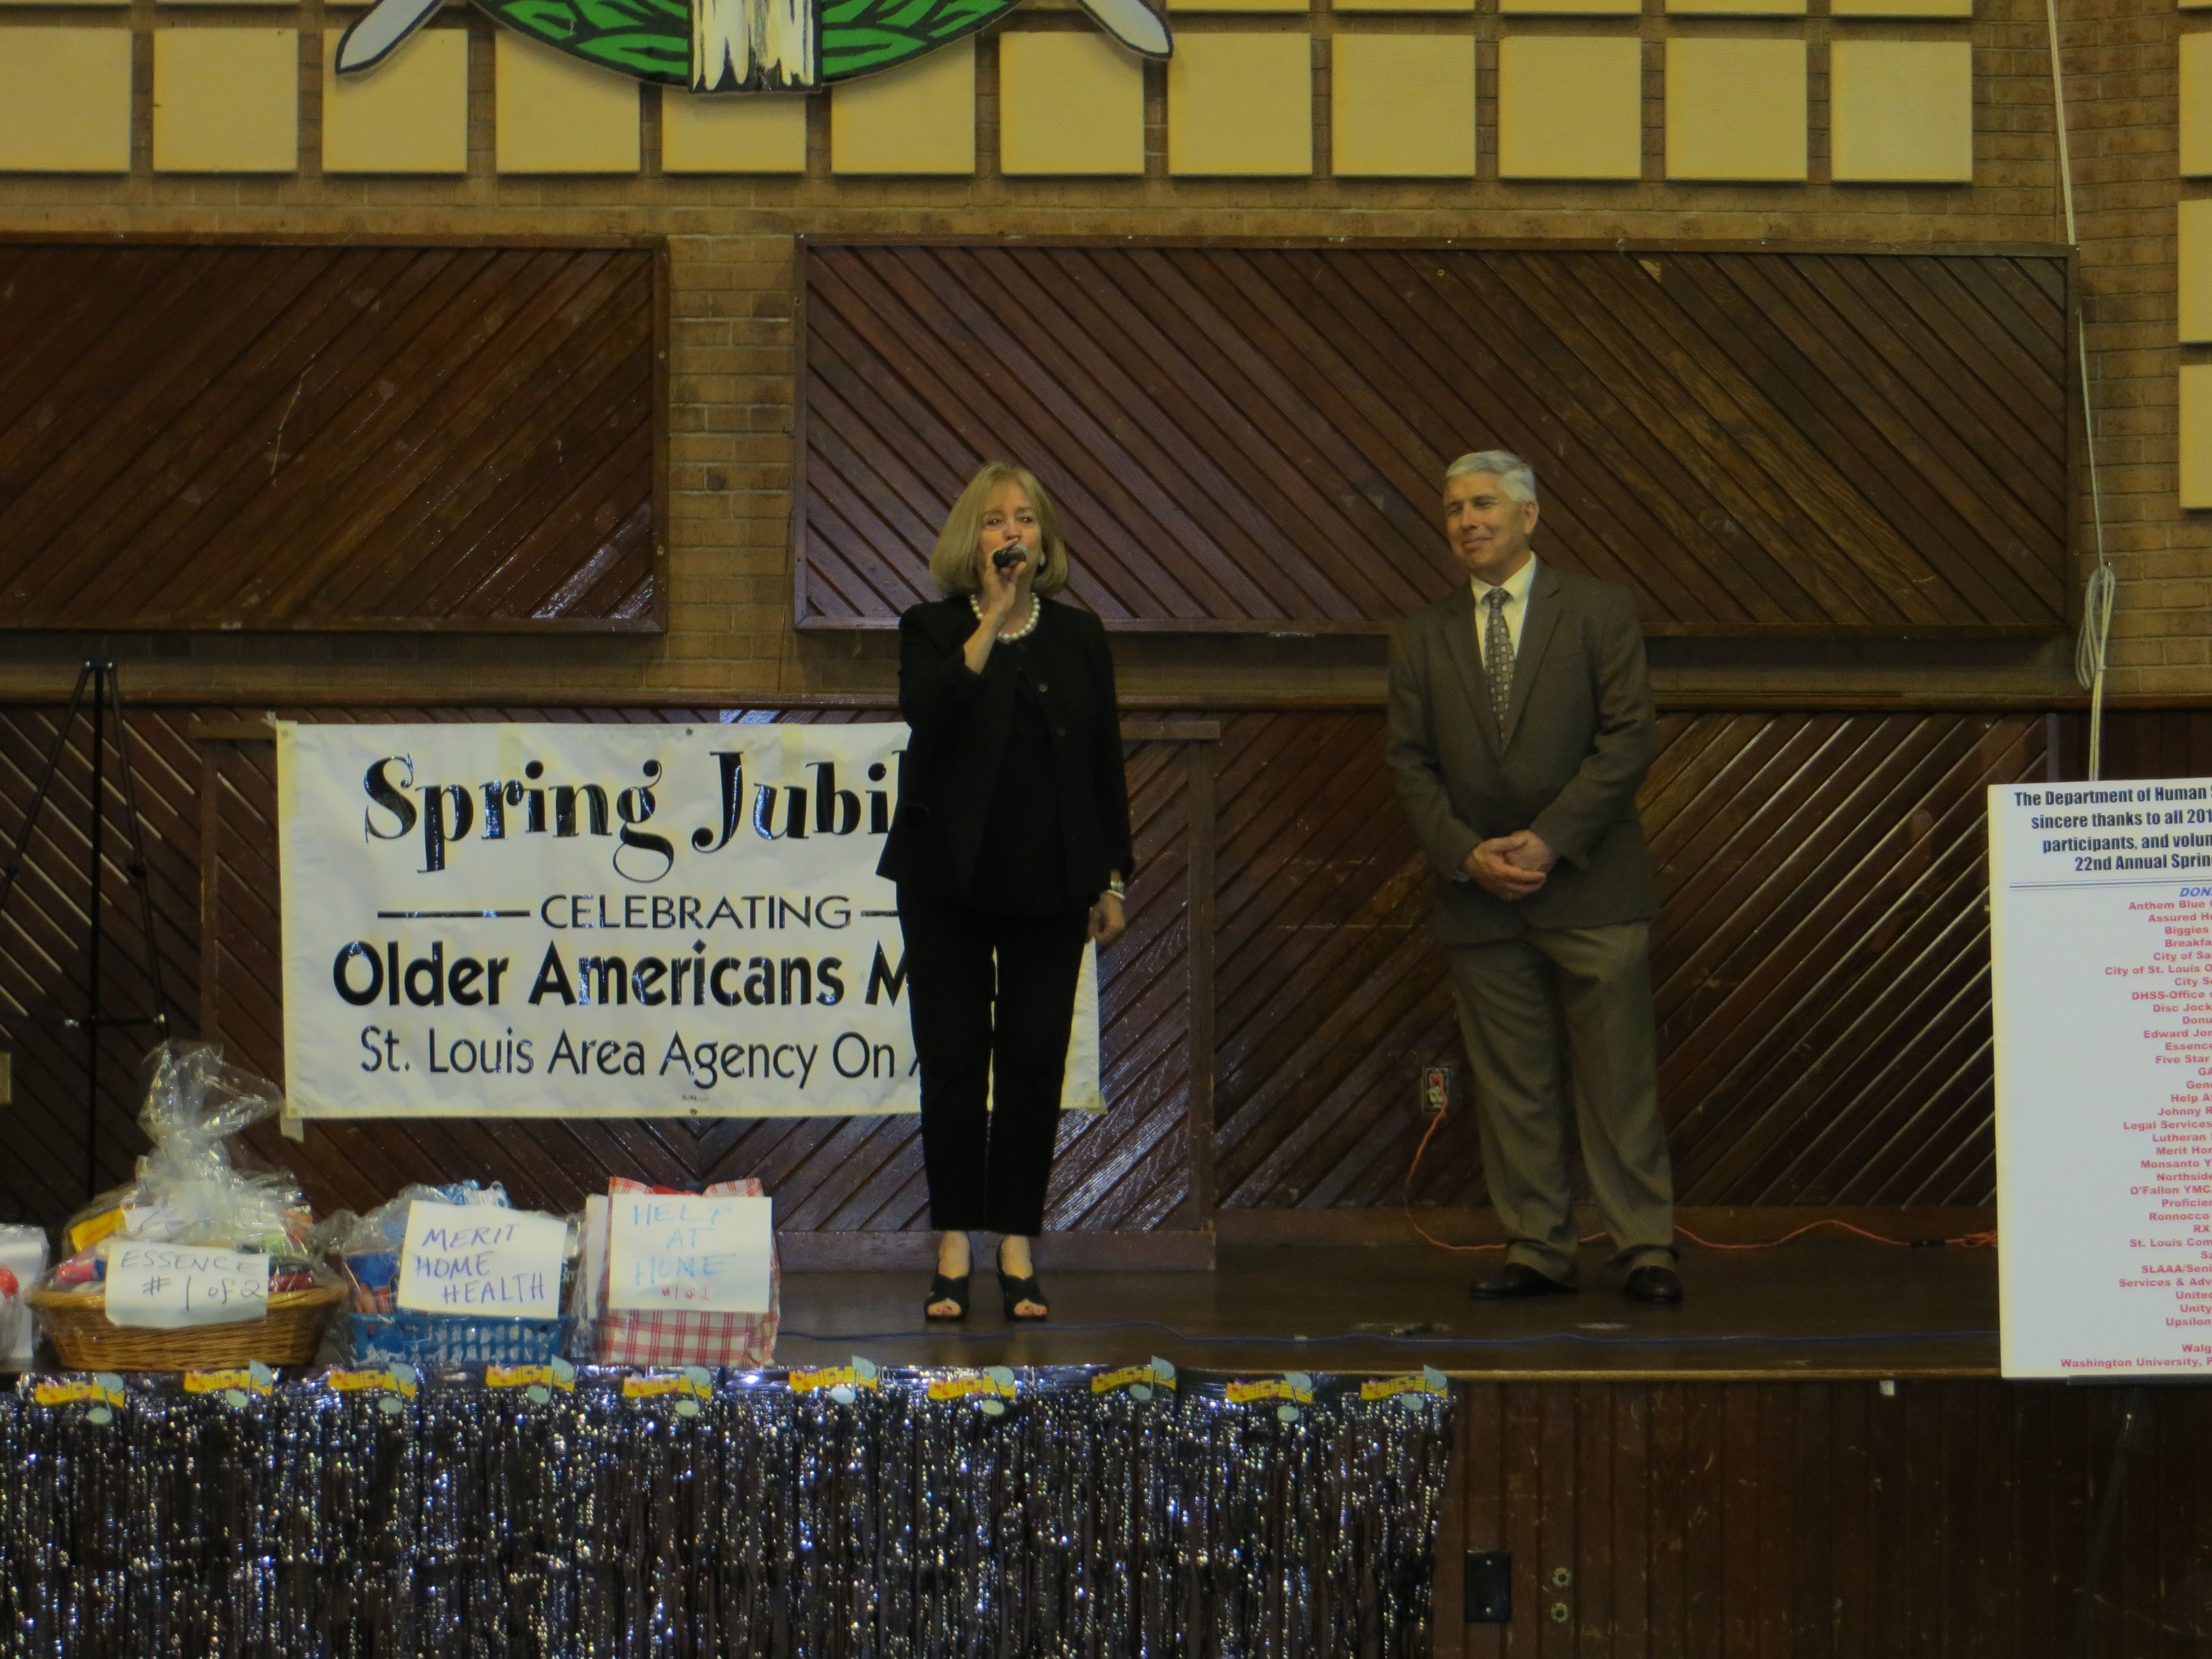 David Sykora of the St. Louis Area Agency on Aging looks on as Mayor Lyda Krewson addresses the audience at the annual Spring Jubilee.